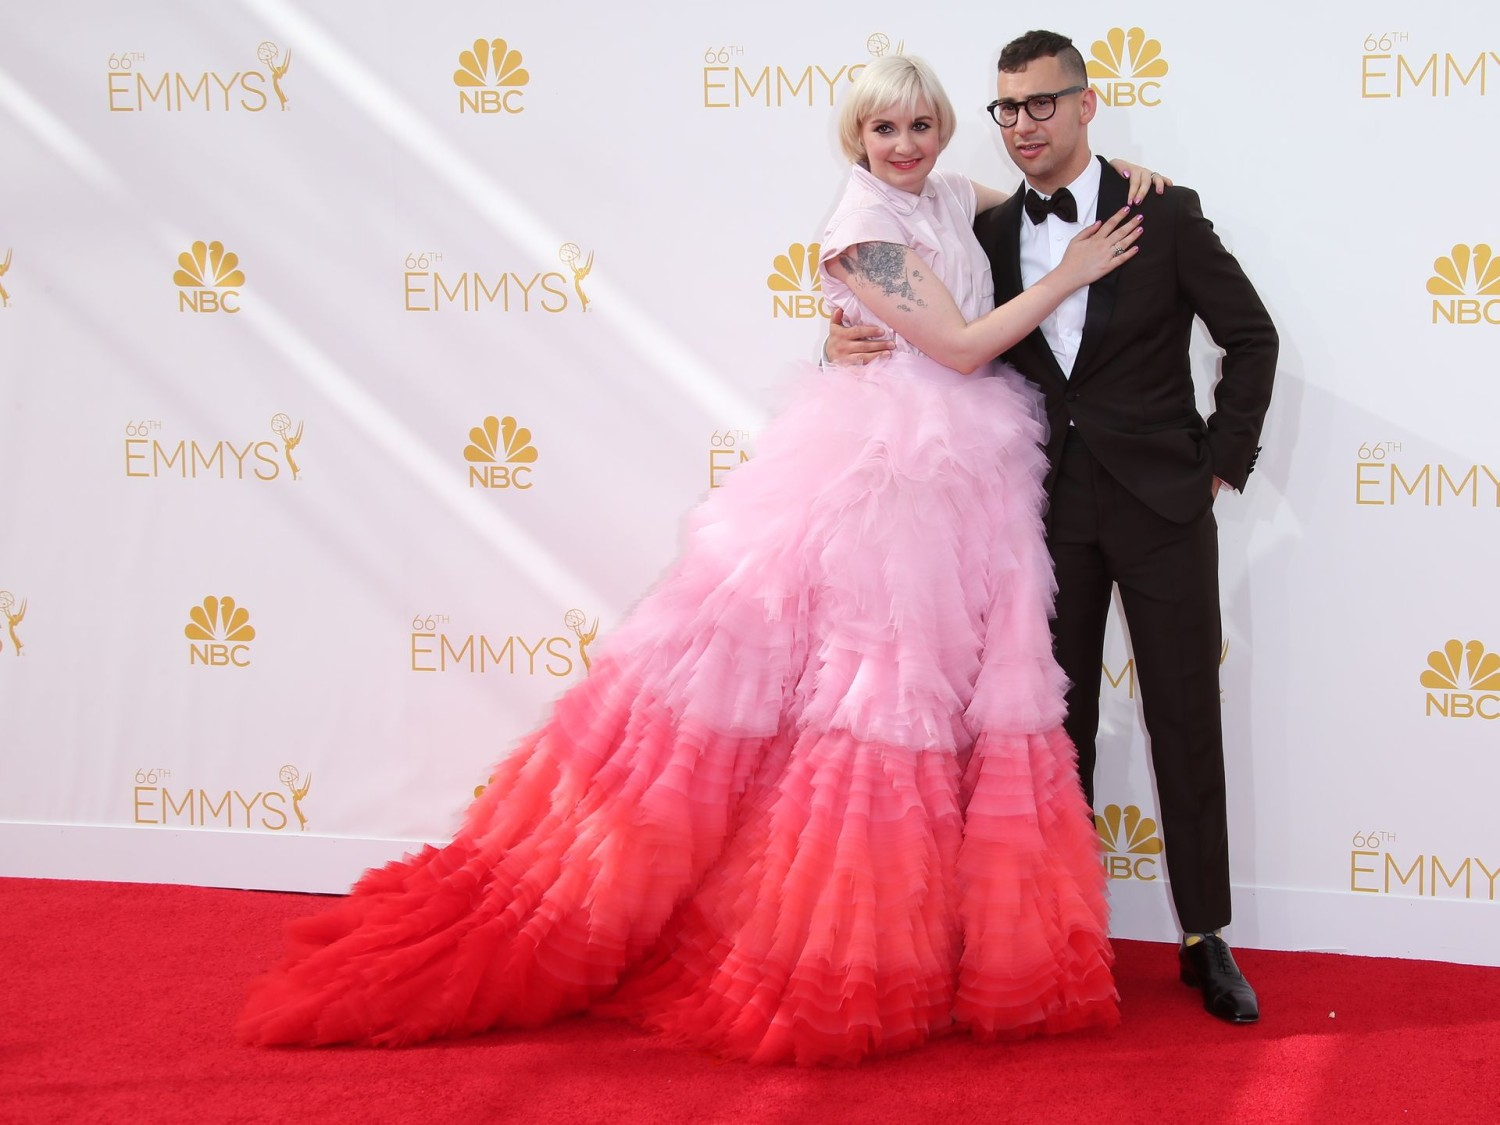 Emmys Ugly 2